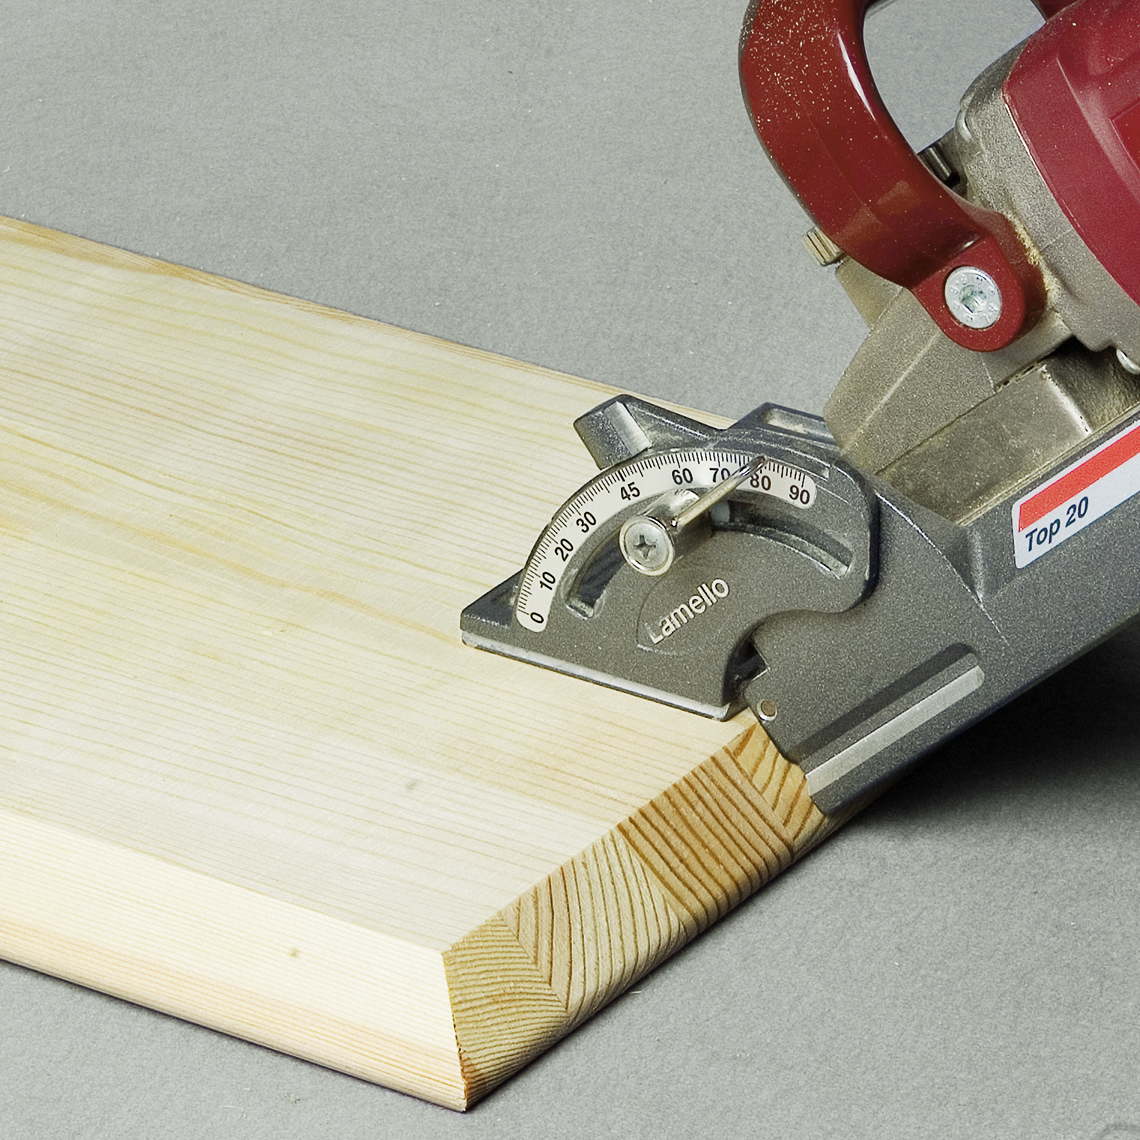 Cutting slot for KNAPP biscuit